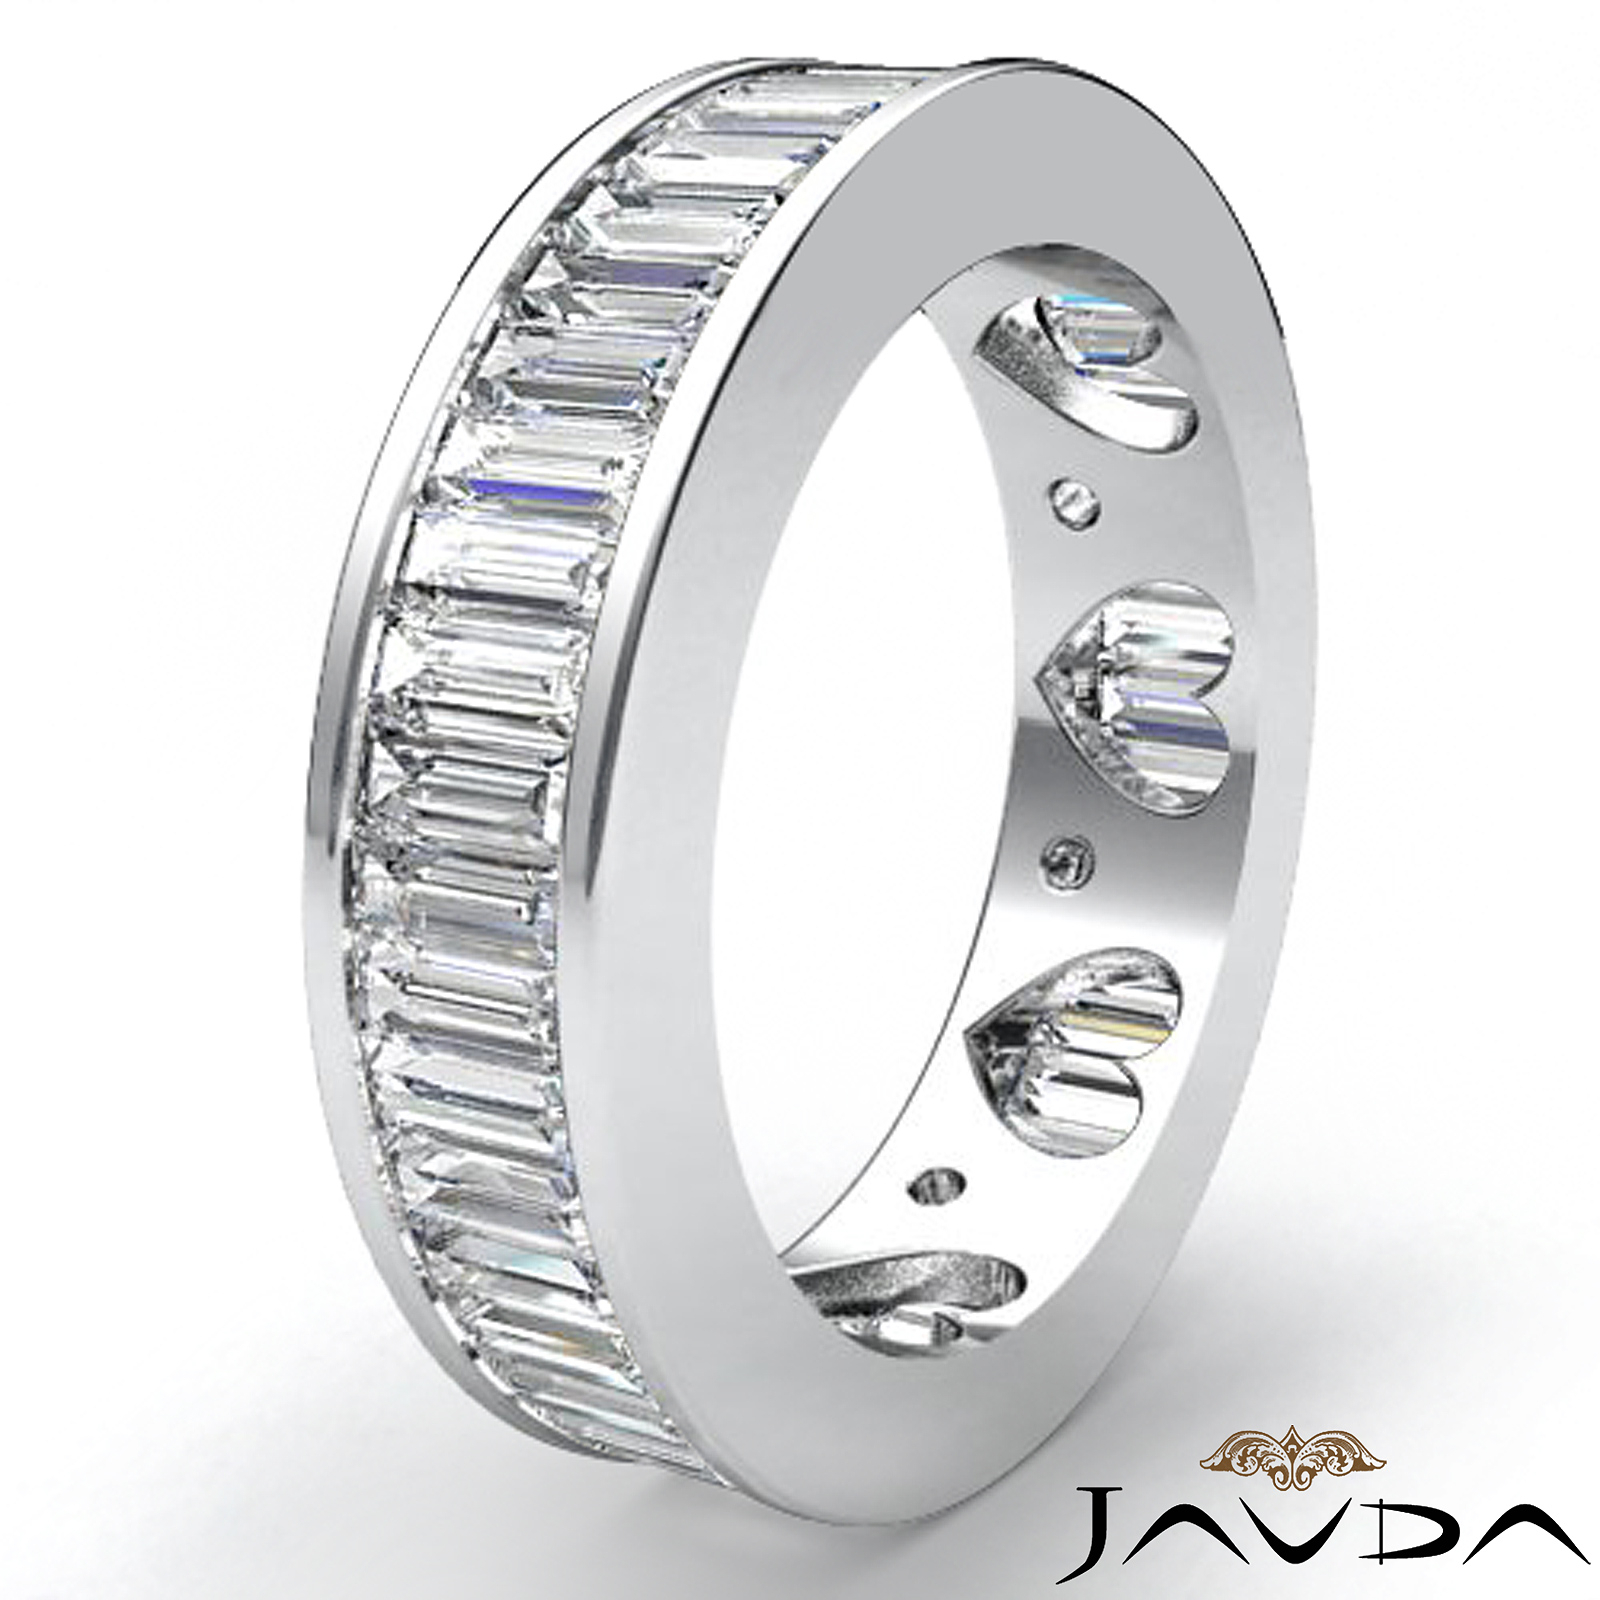 Baguette Channel Set Diamond Womens Eternity Wedding Band Pertaining To Most Current Baguette Diamond Channel Set Anniversary Bands In White Gold (View 8 of 25)